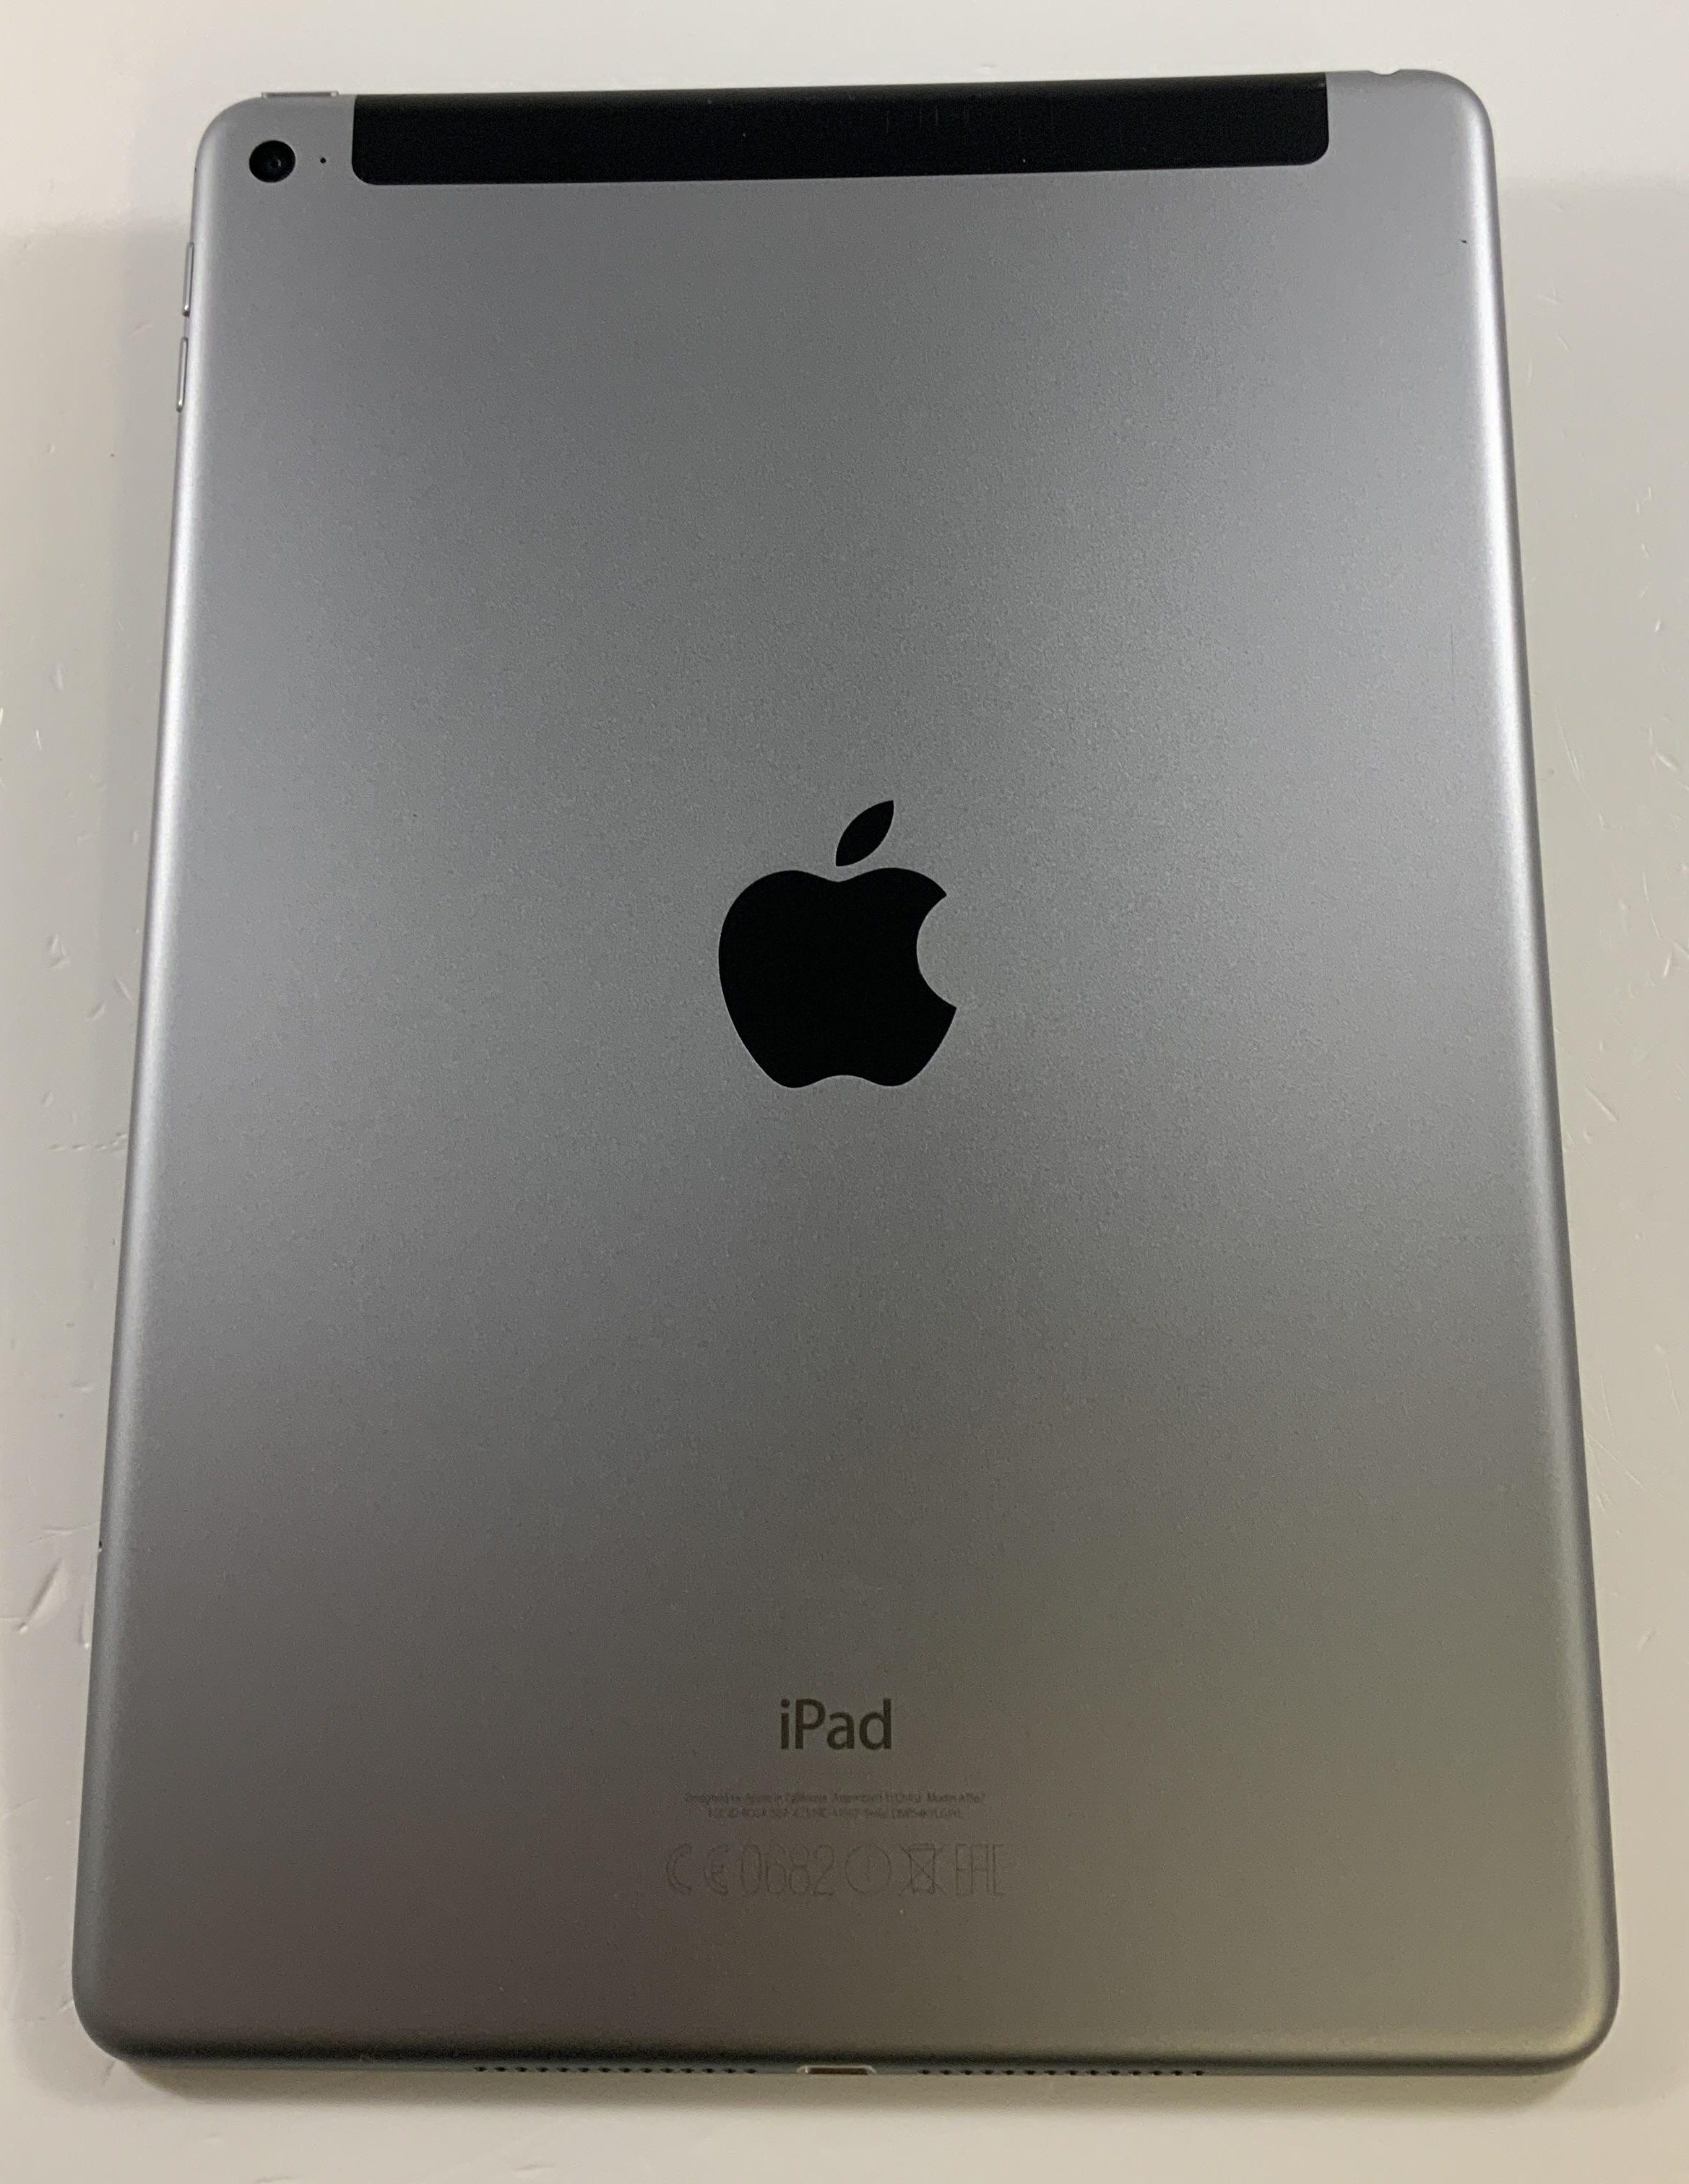 iPad Air 2 Wi-Fi + Cellular 64GB, 64GB, Space Gray, Bild 2